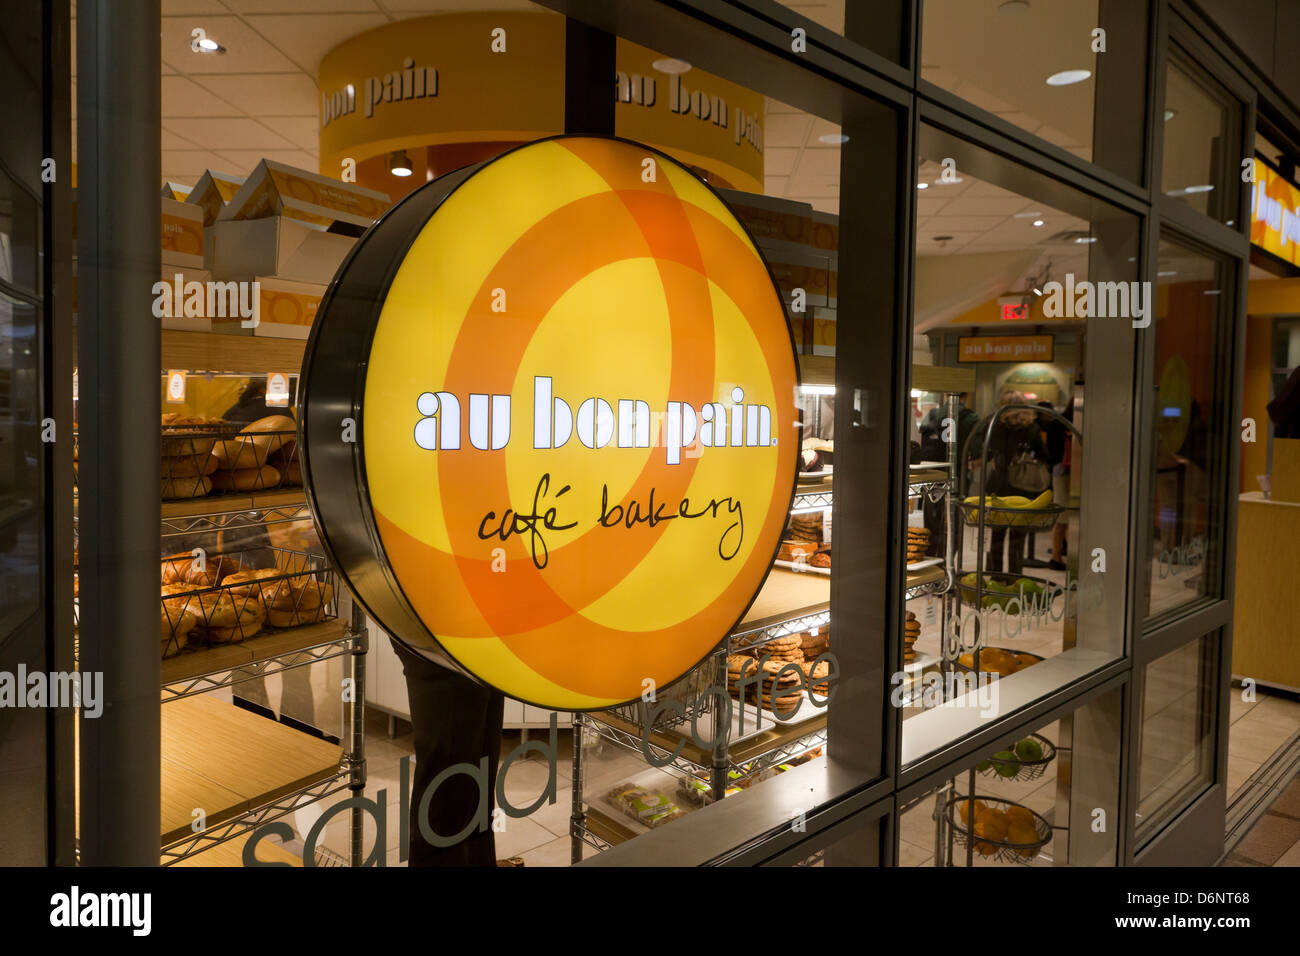 Au Bon Pain Cafe Bakery sign in window - USA Stock Photo